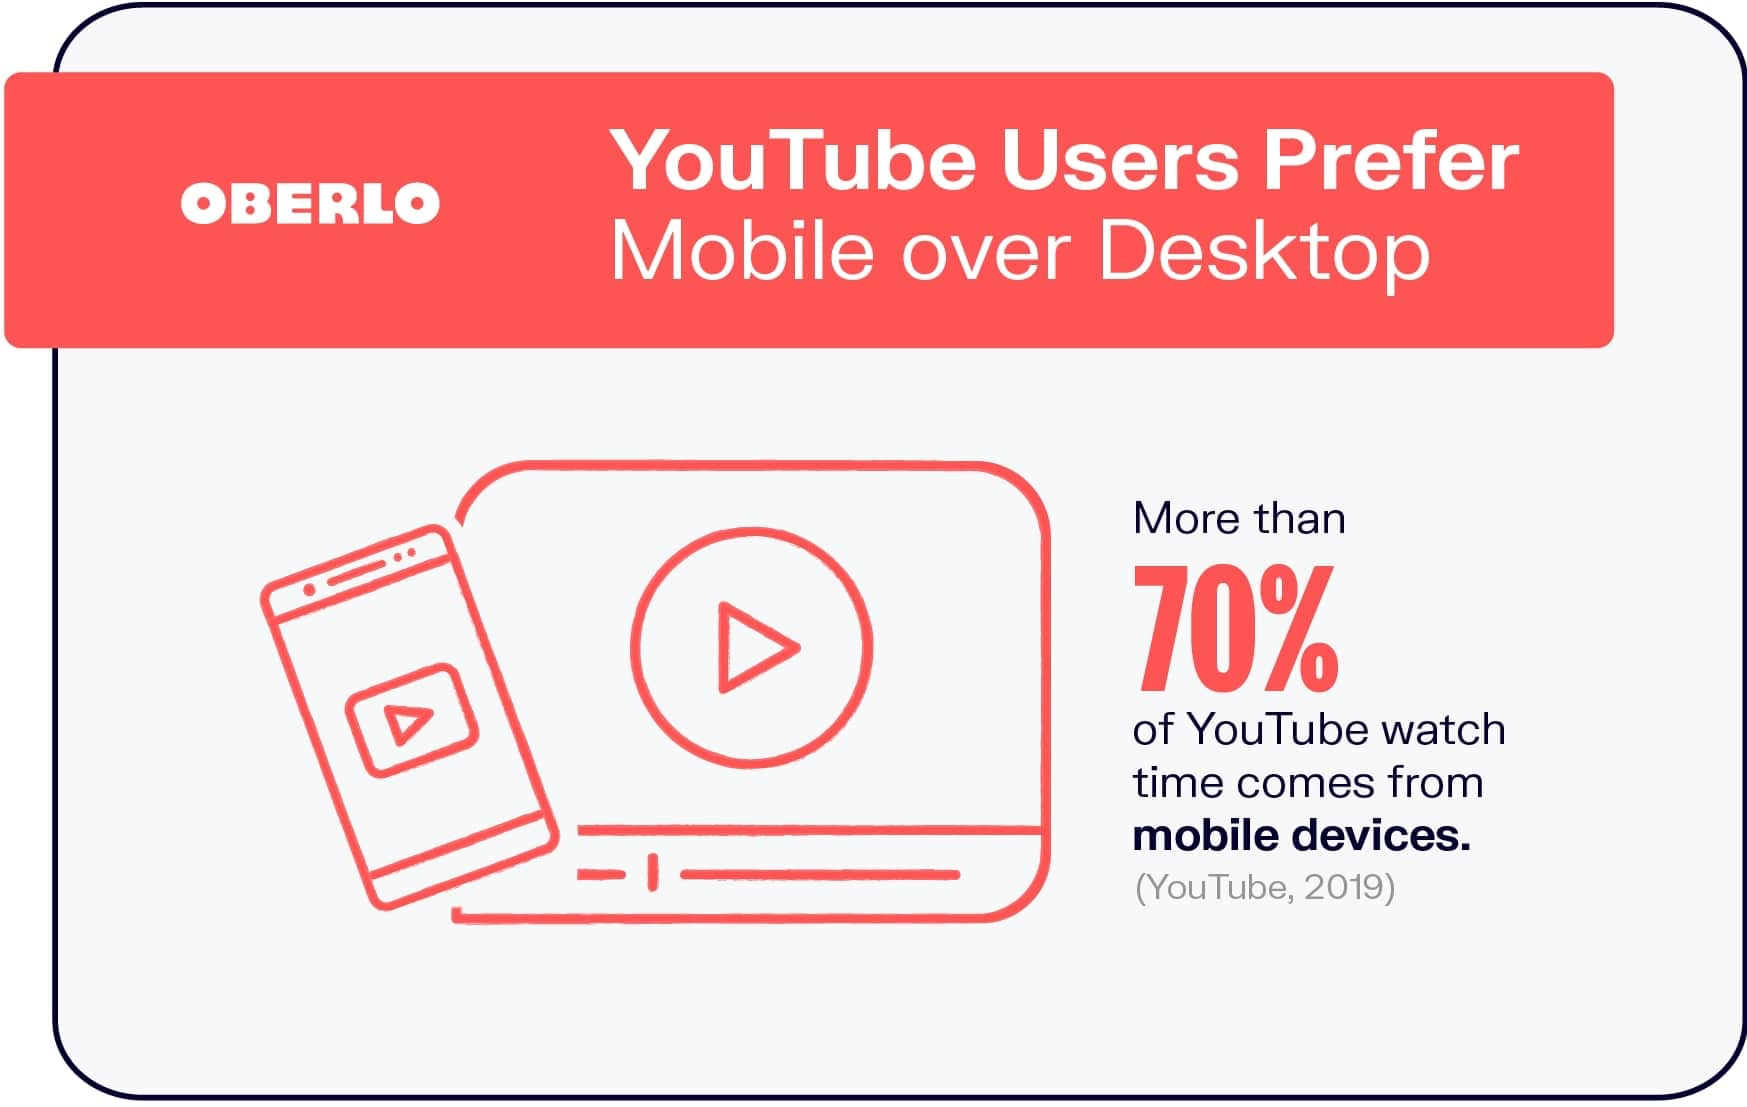 YouTube Users Prefer Mobile over Desktop